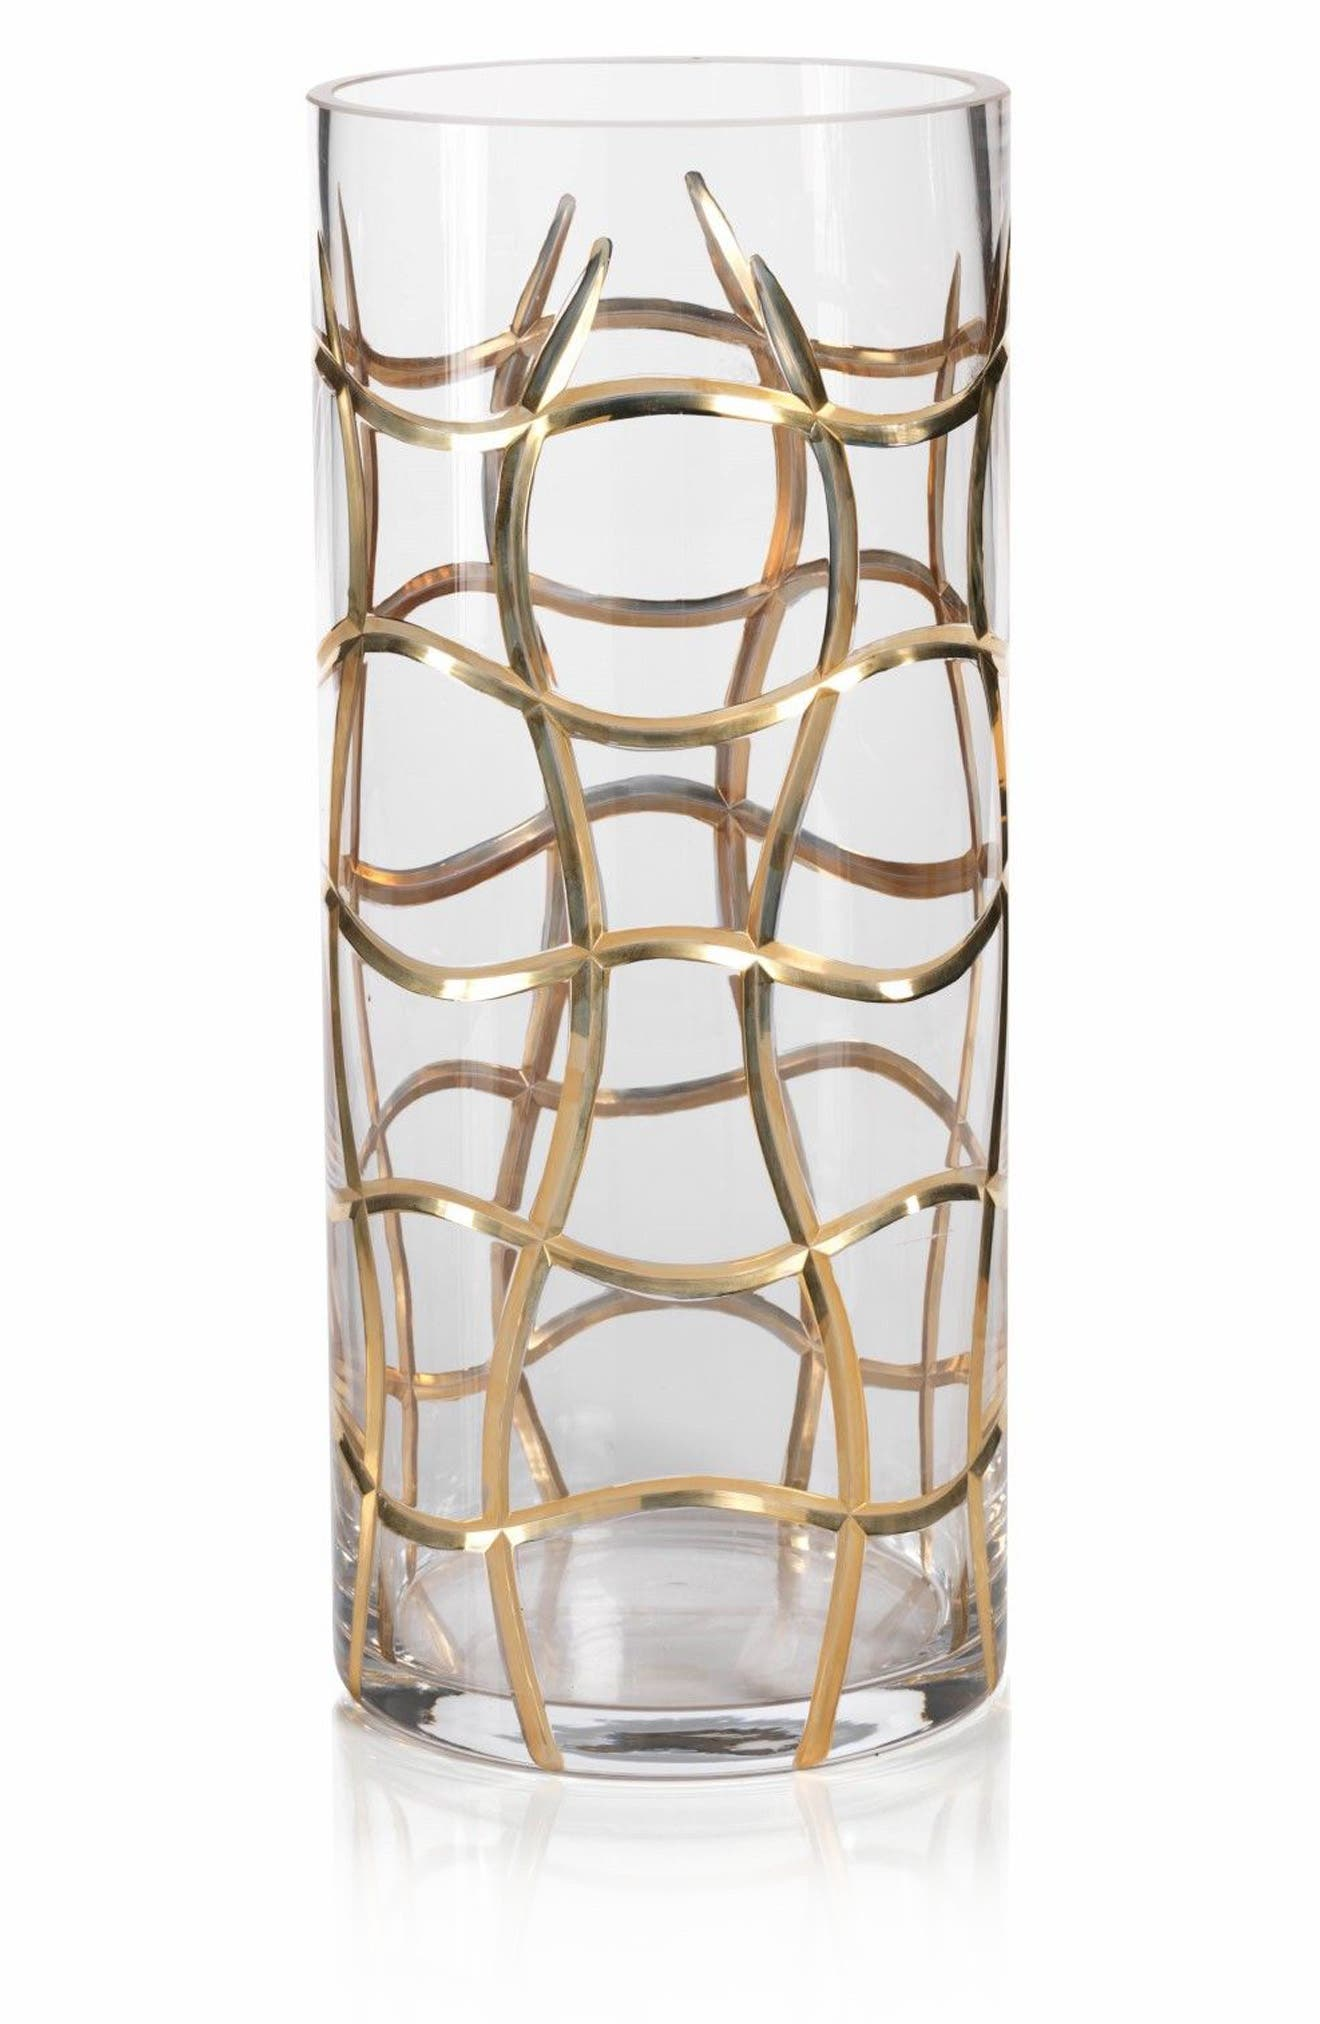 Large Groove Hurricane Candle Holder,                         Main,                         color, Clear/ Gold/ Metallic